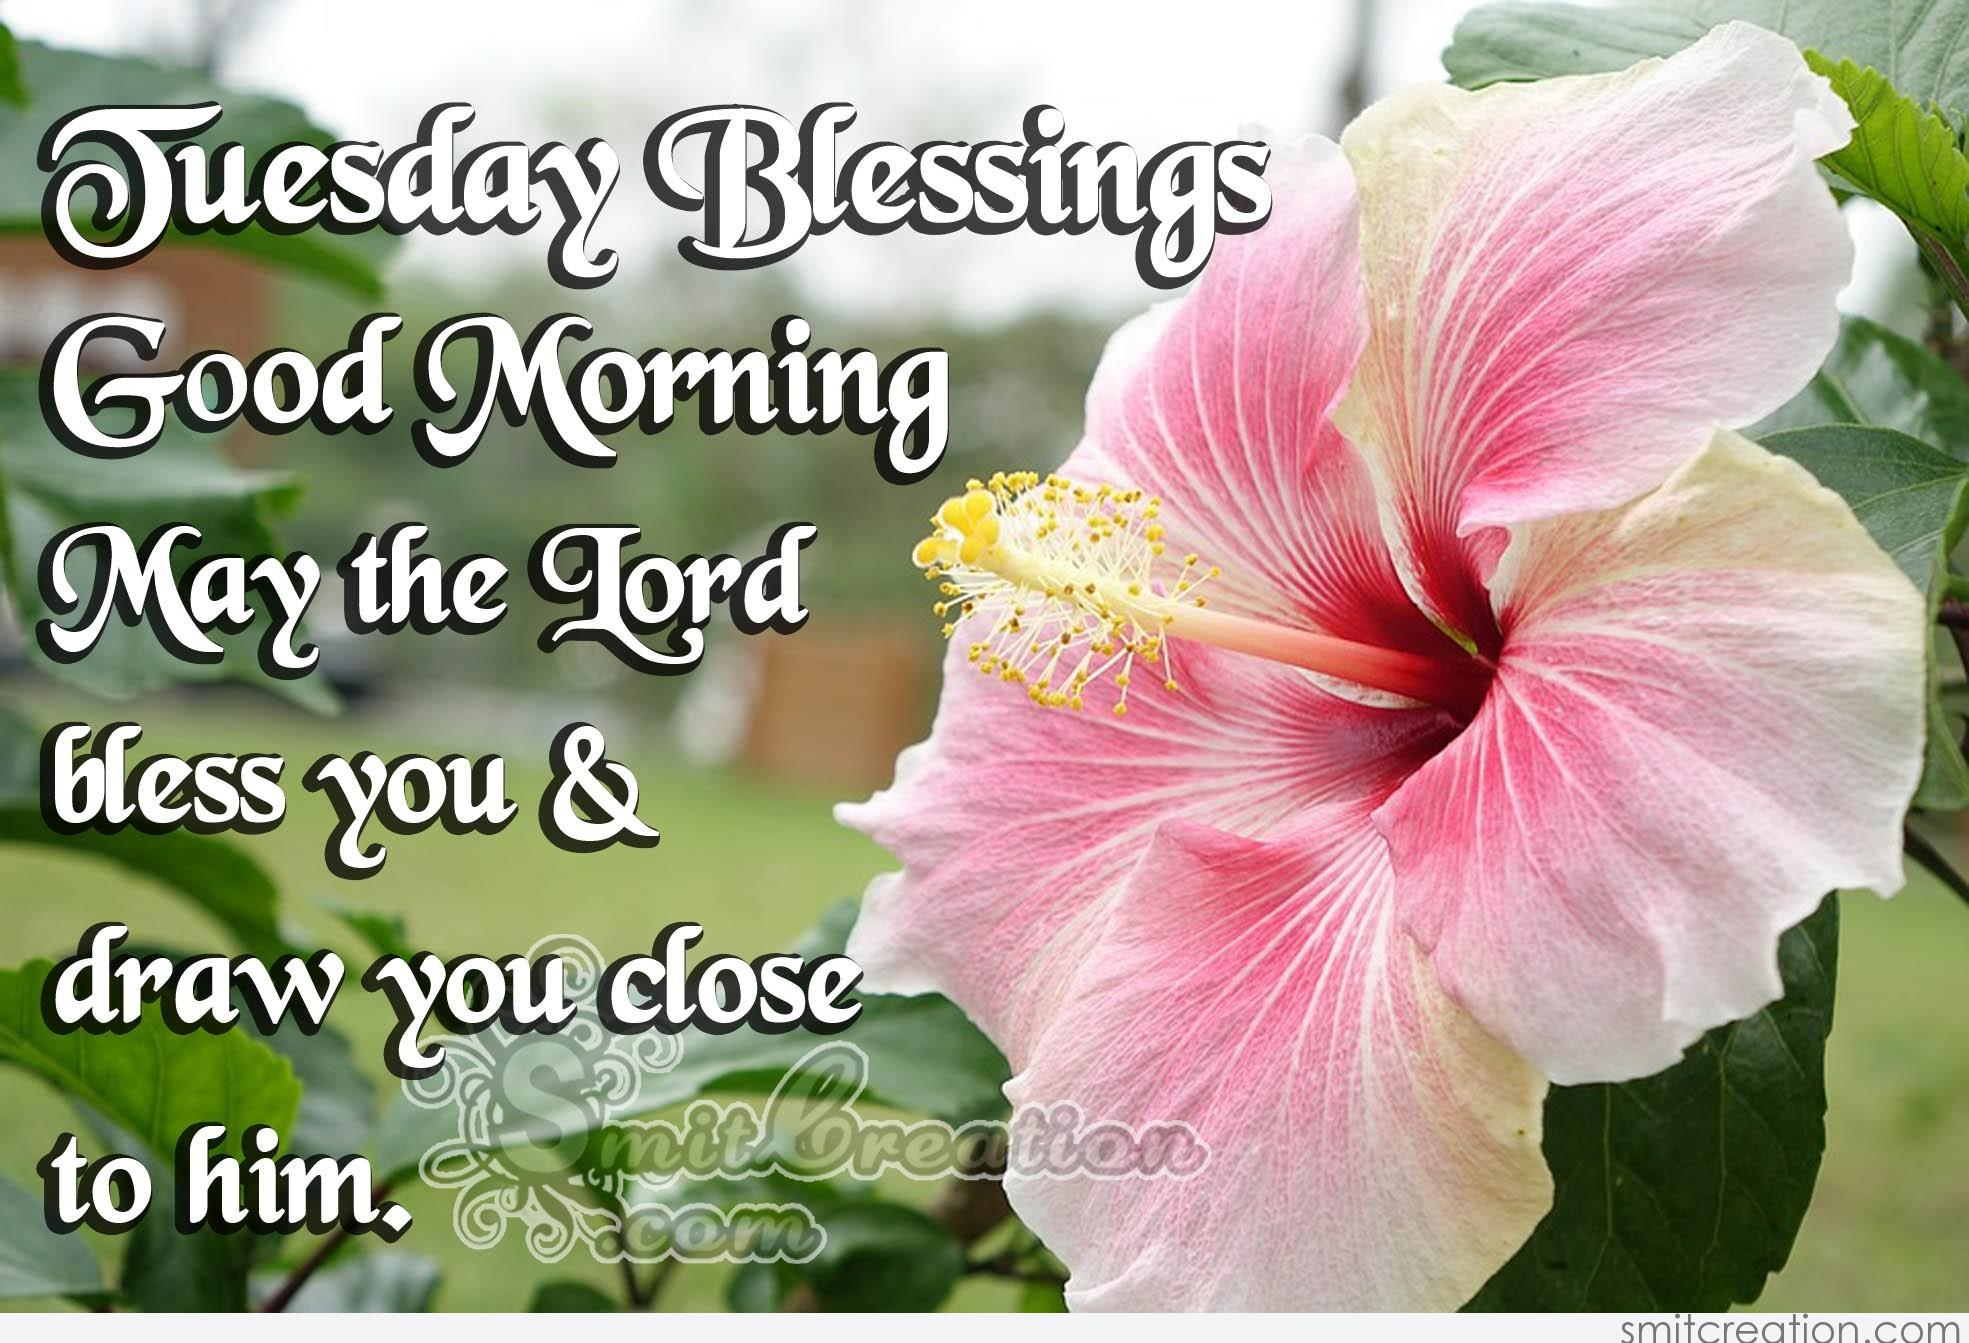 Good Morning Tuesday Blessing Images : Tuesday blessings good morning smitcreation